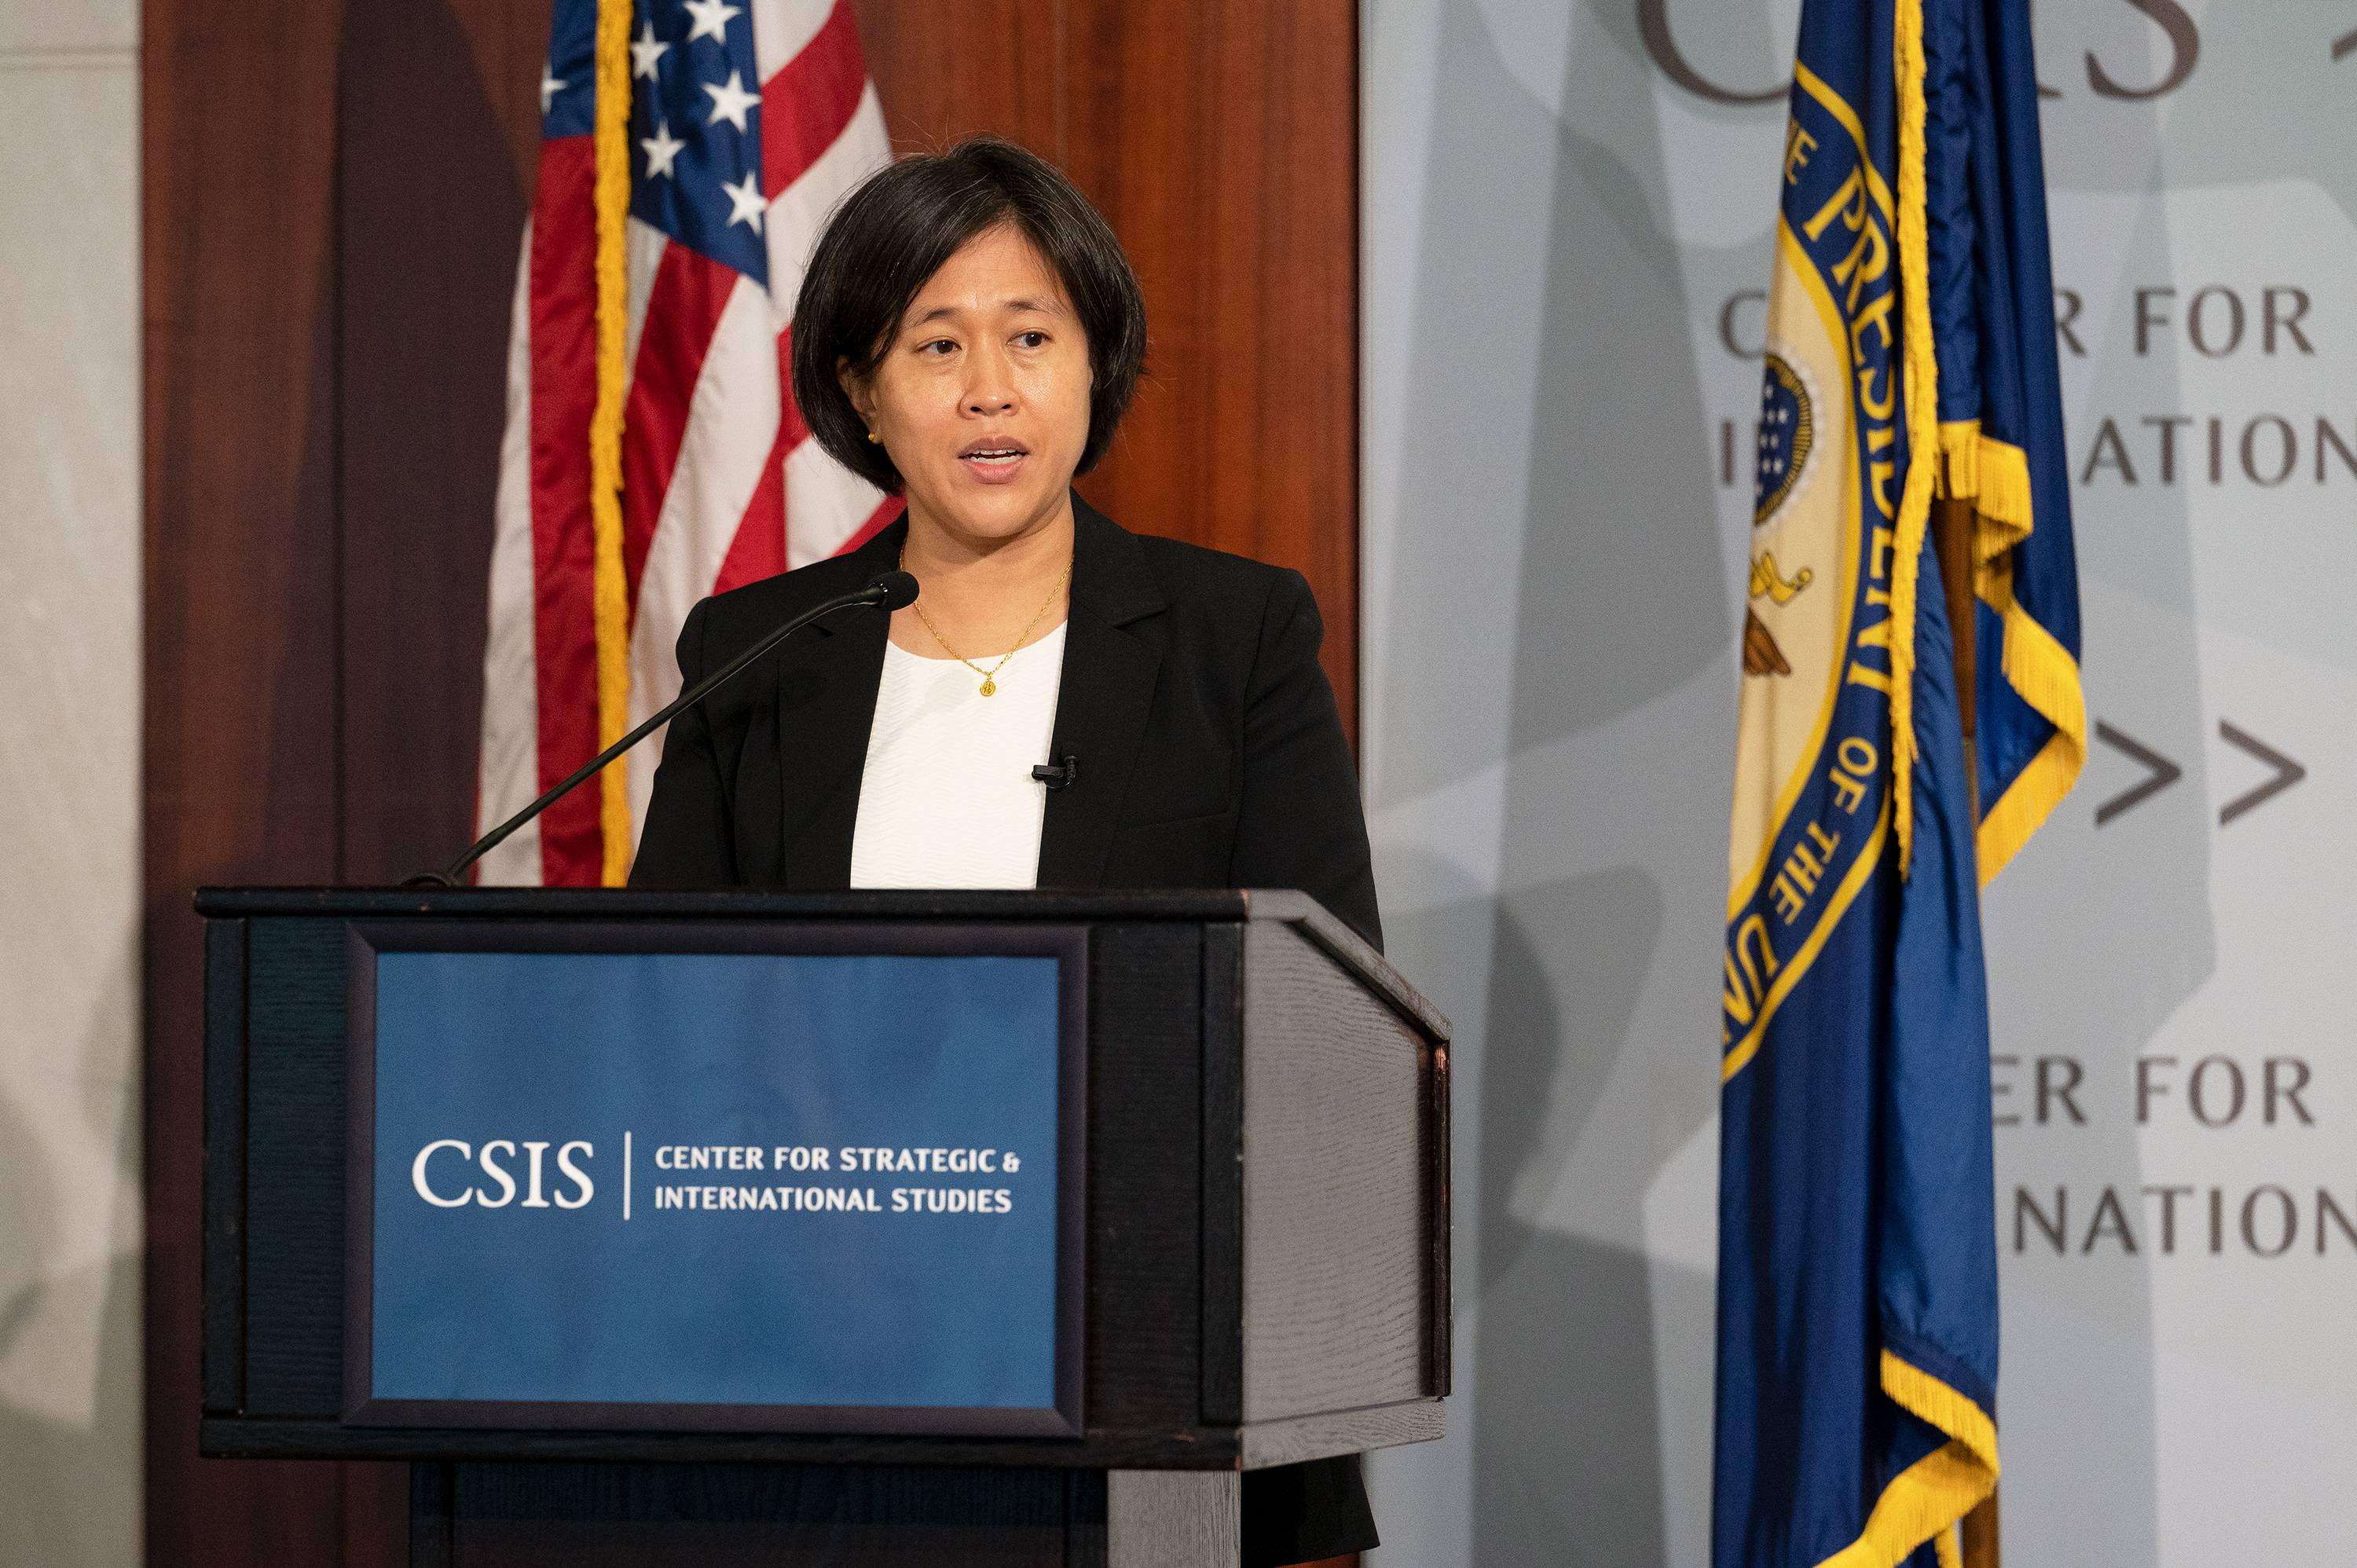 U.S. trade representative Katherine Tai has said the Biden administration will work to enforce China's commitments under the trade deal. | BLOOMBERG